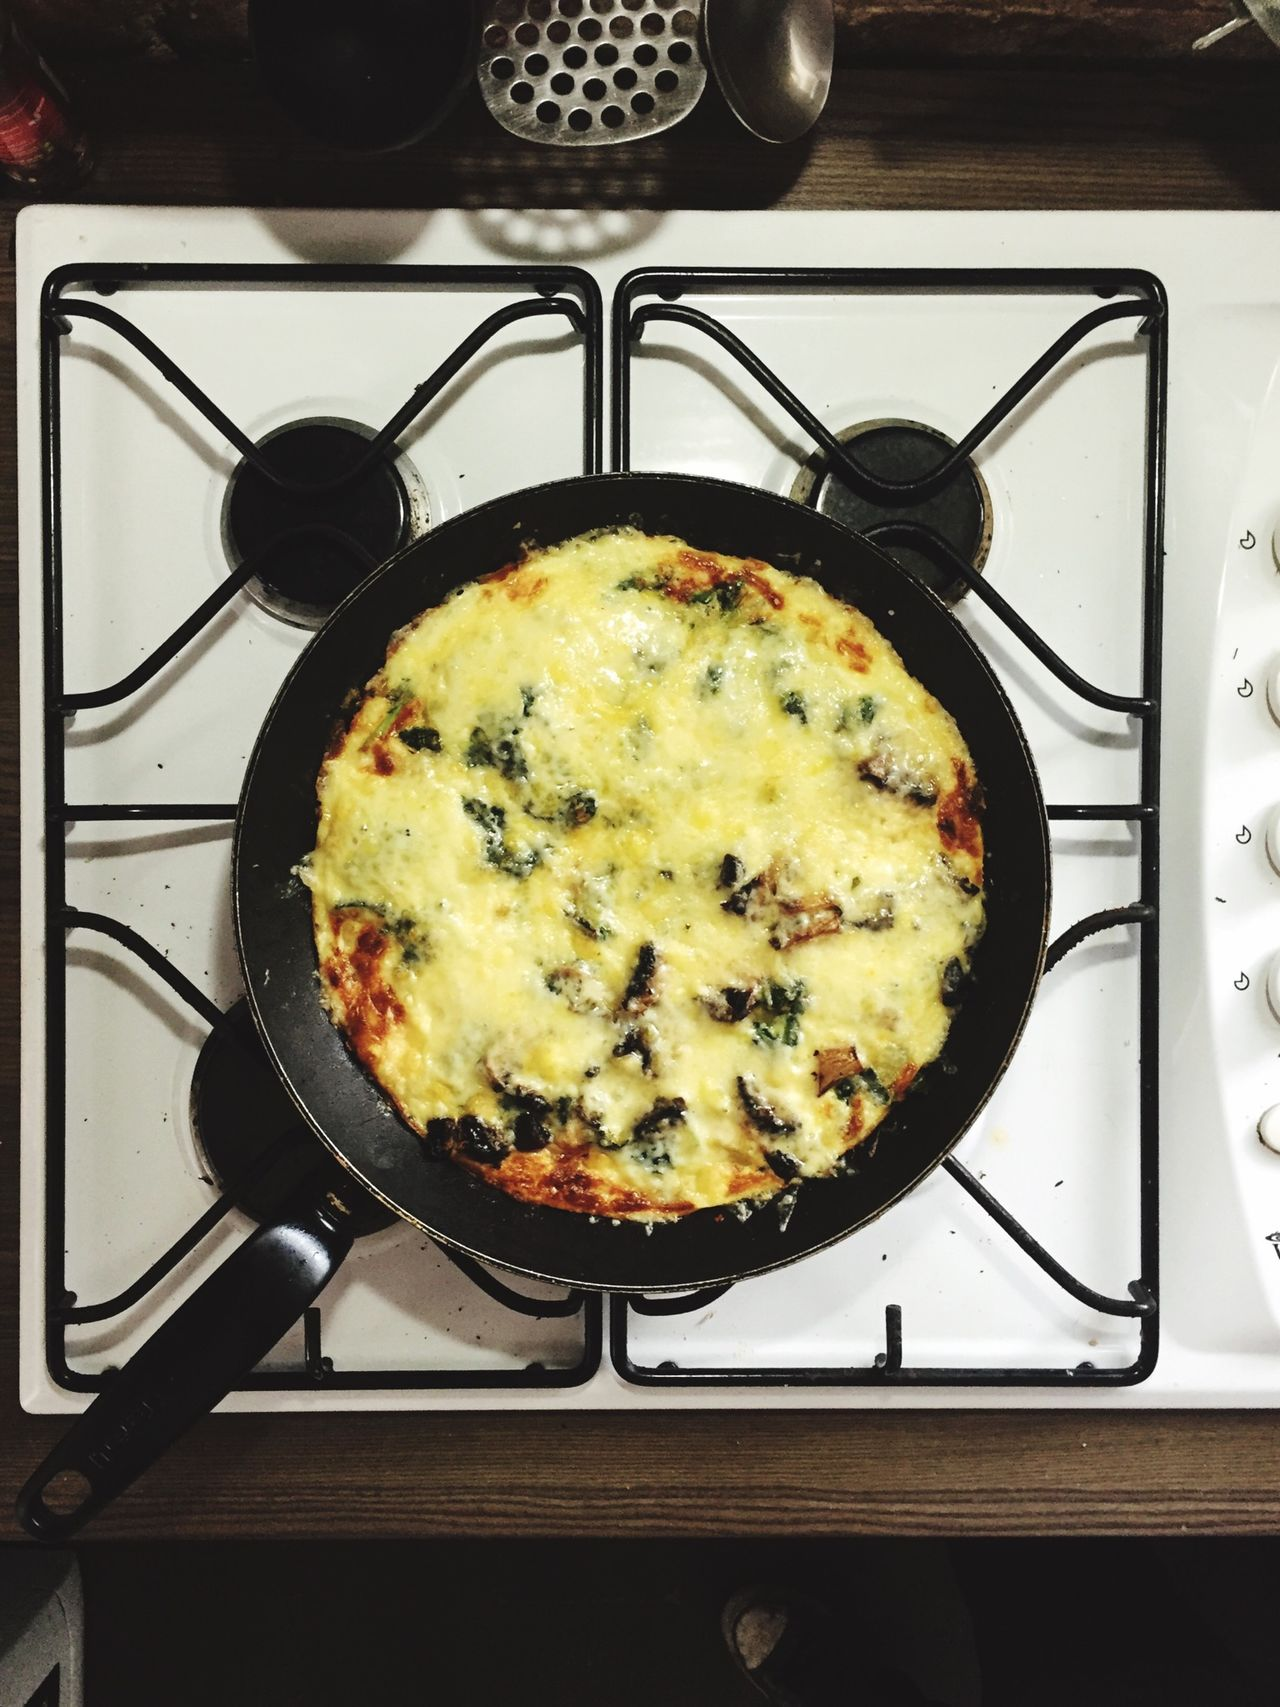 Sunday Lunch Cooking At Home French Omelette Frying Pan Wallsend Healthy Food Hangover Cures Eggs Courgettes Mushrooms Spinach Onions Mature Cheddar Cheese Fresh Herbs  Grilled Brown Sauce Mmmm! Panda Omelette